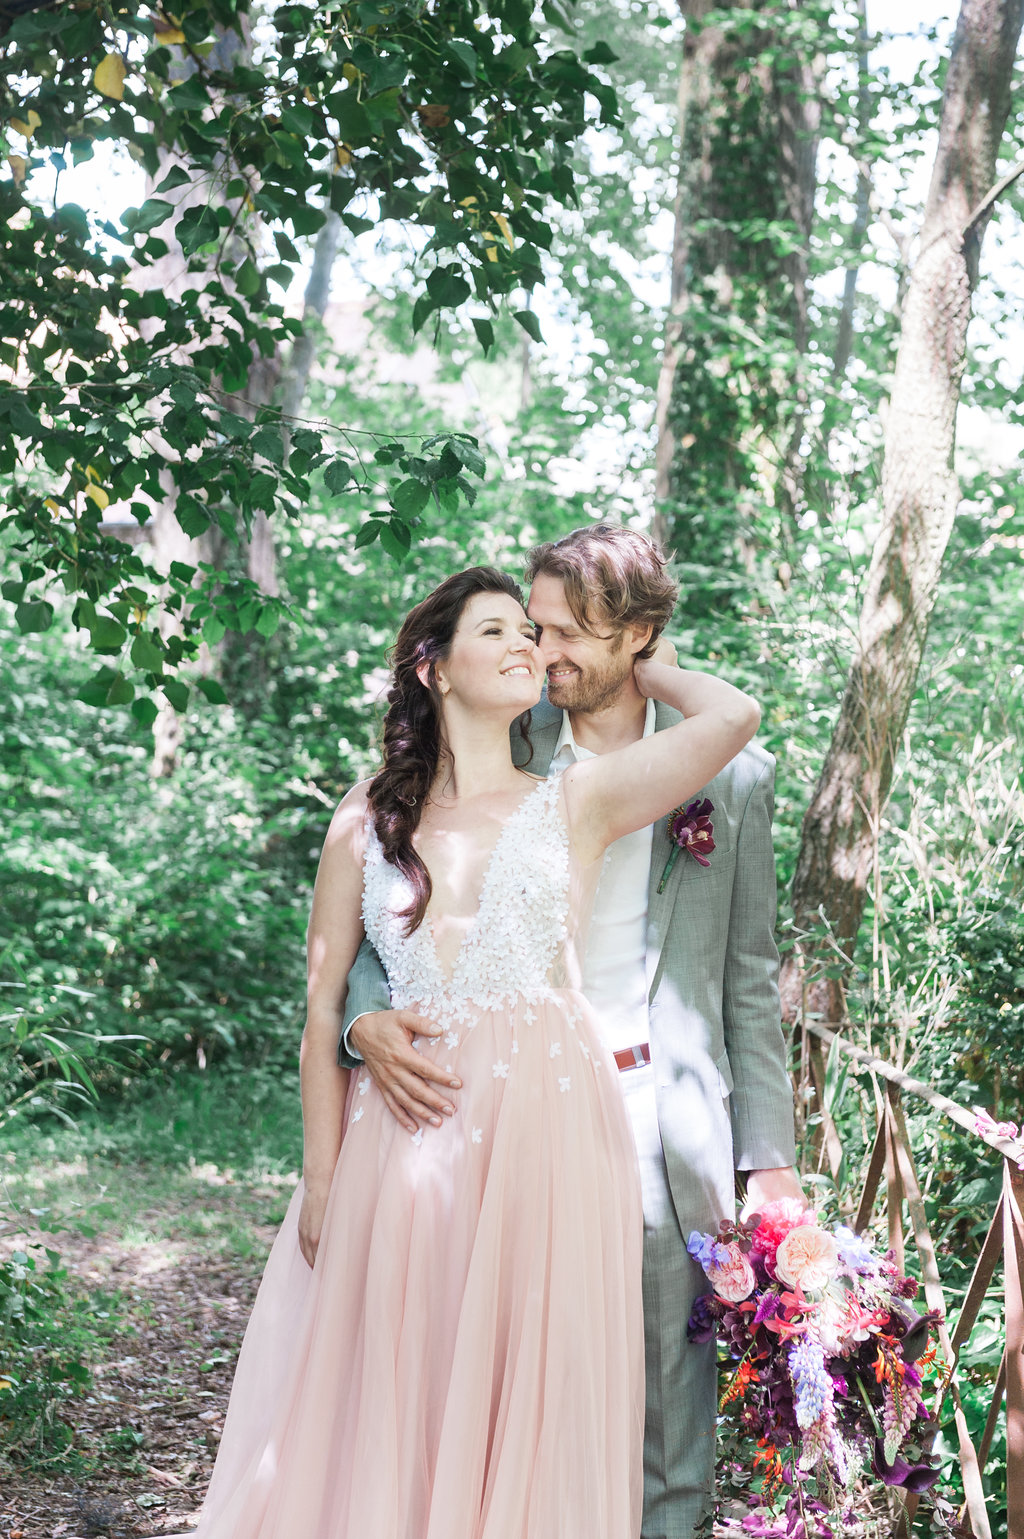 Into The Woods A Dark Fairytale Inspired Wedding Styled Shoot In